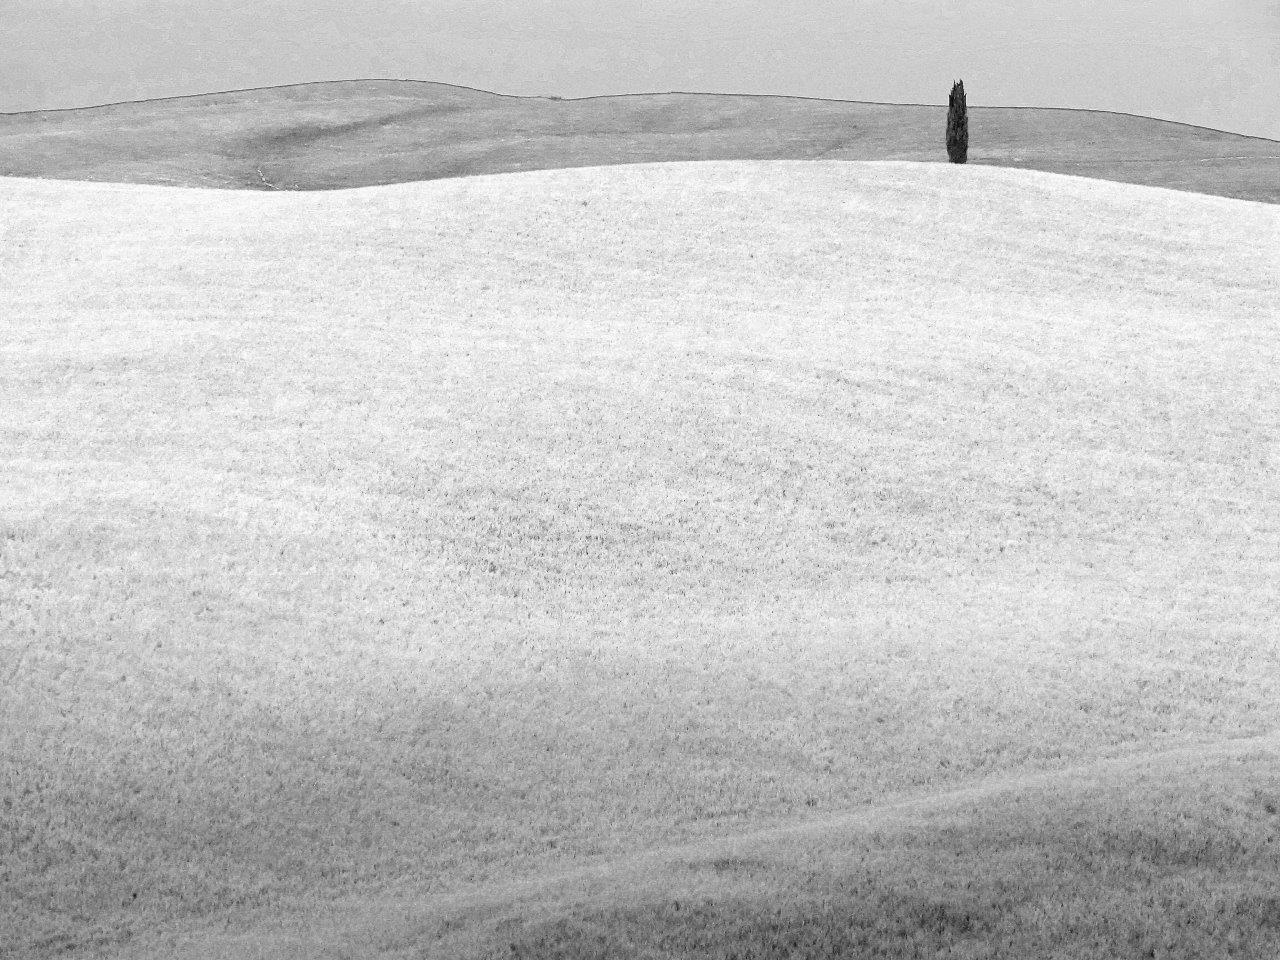 White and Grey landscapes  by Matteo Venturini